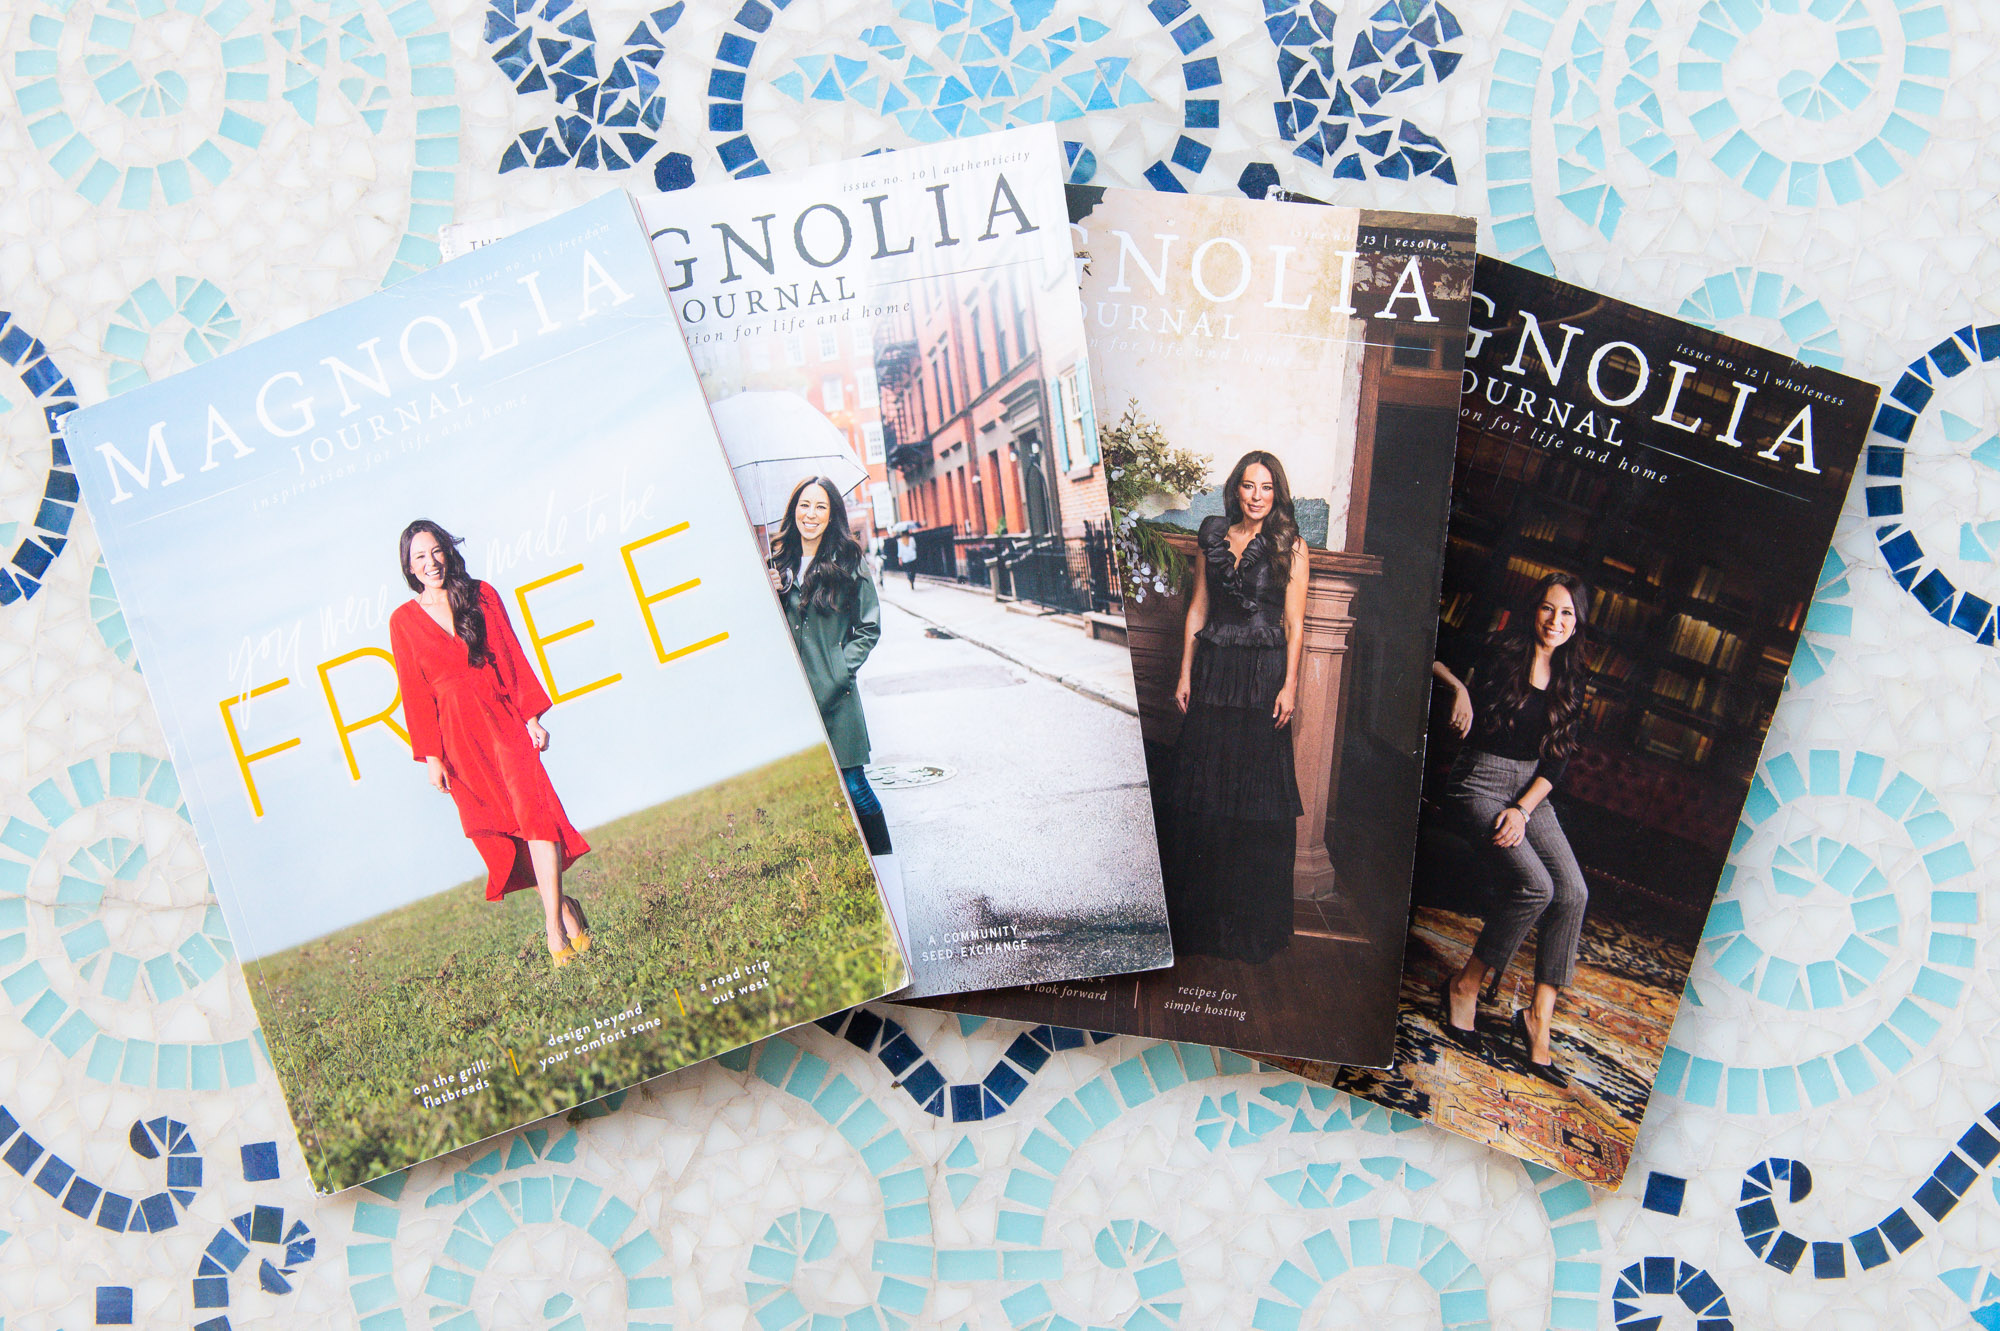 Mother's Day Gift idea for New Moms- Magnolia Journal subscription. 4 magazines for 1 year.